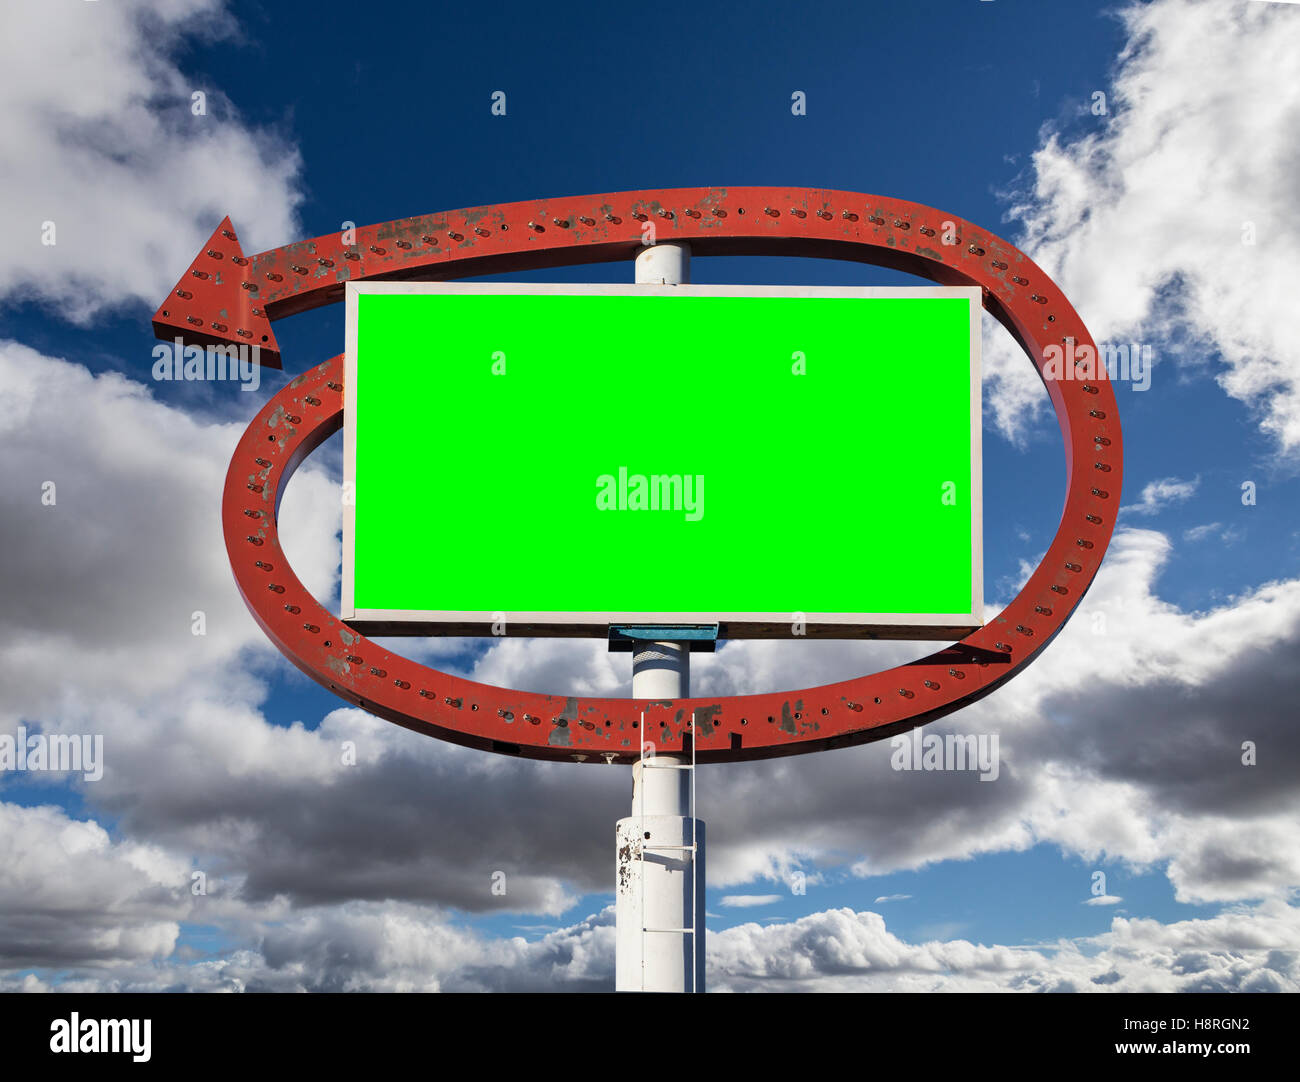 Vintage arrow sign with chroma key green insert and clouds. - Stock Image